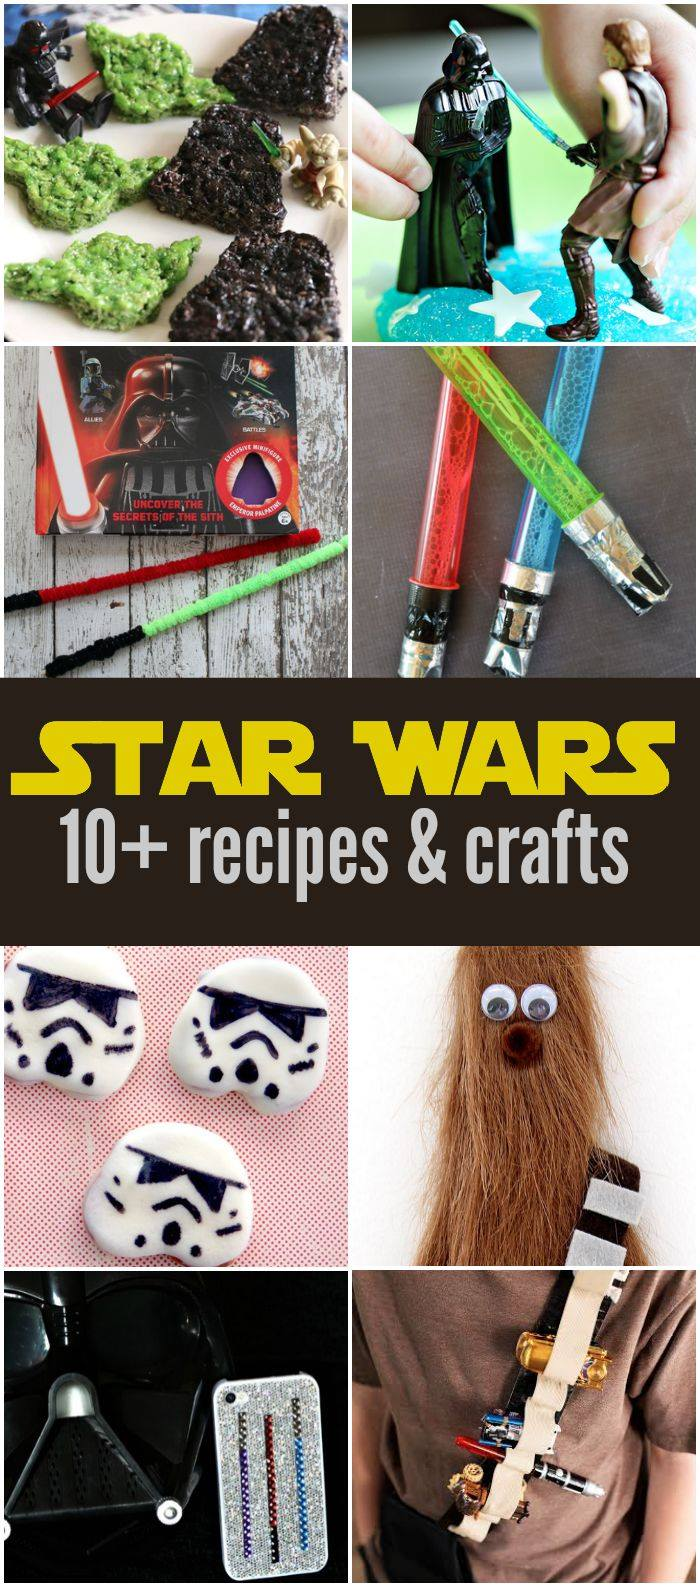 Star Wars Crafts and Recipes